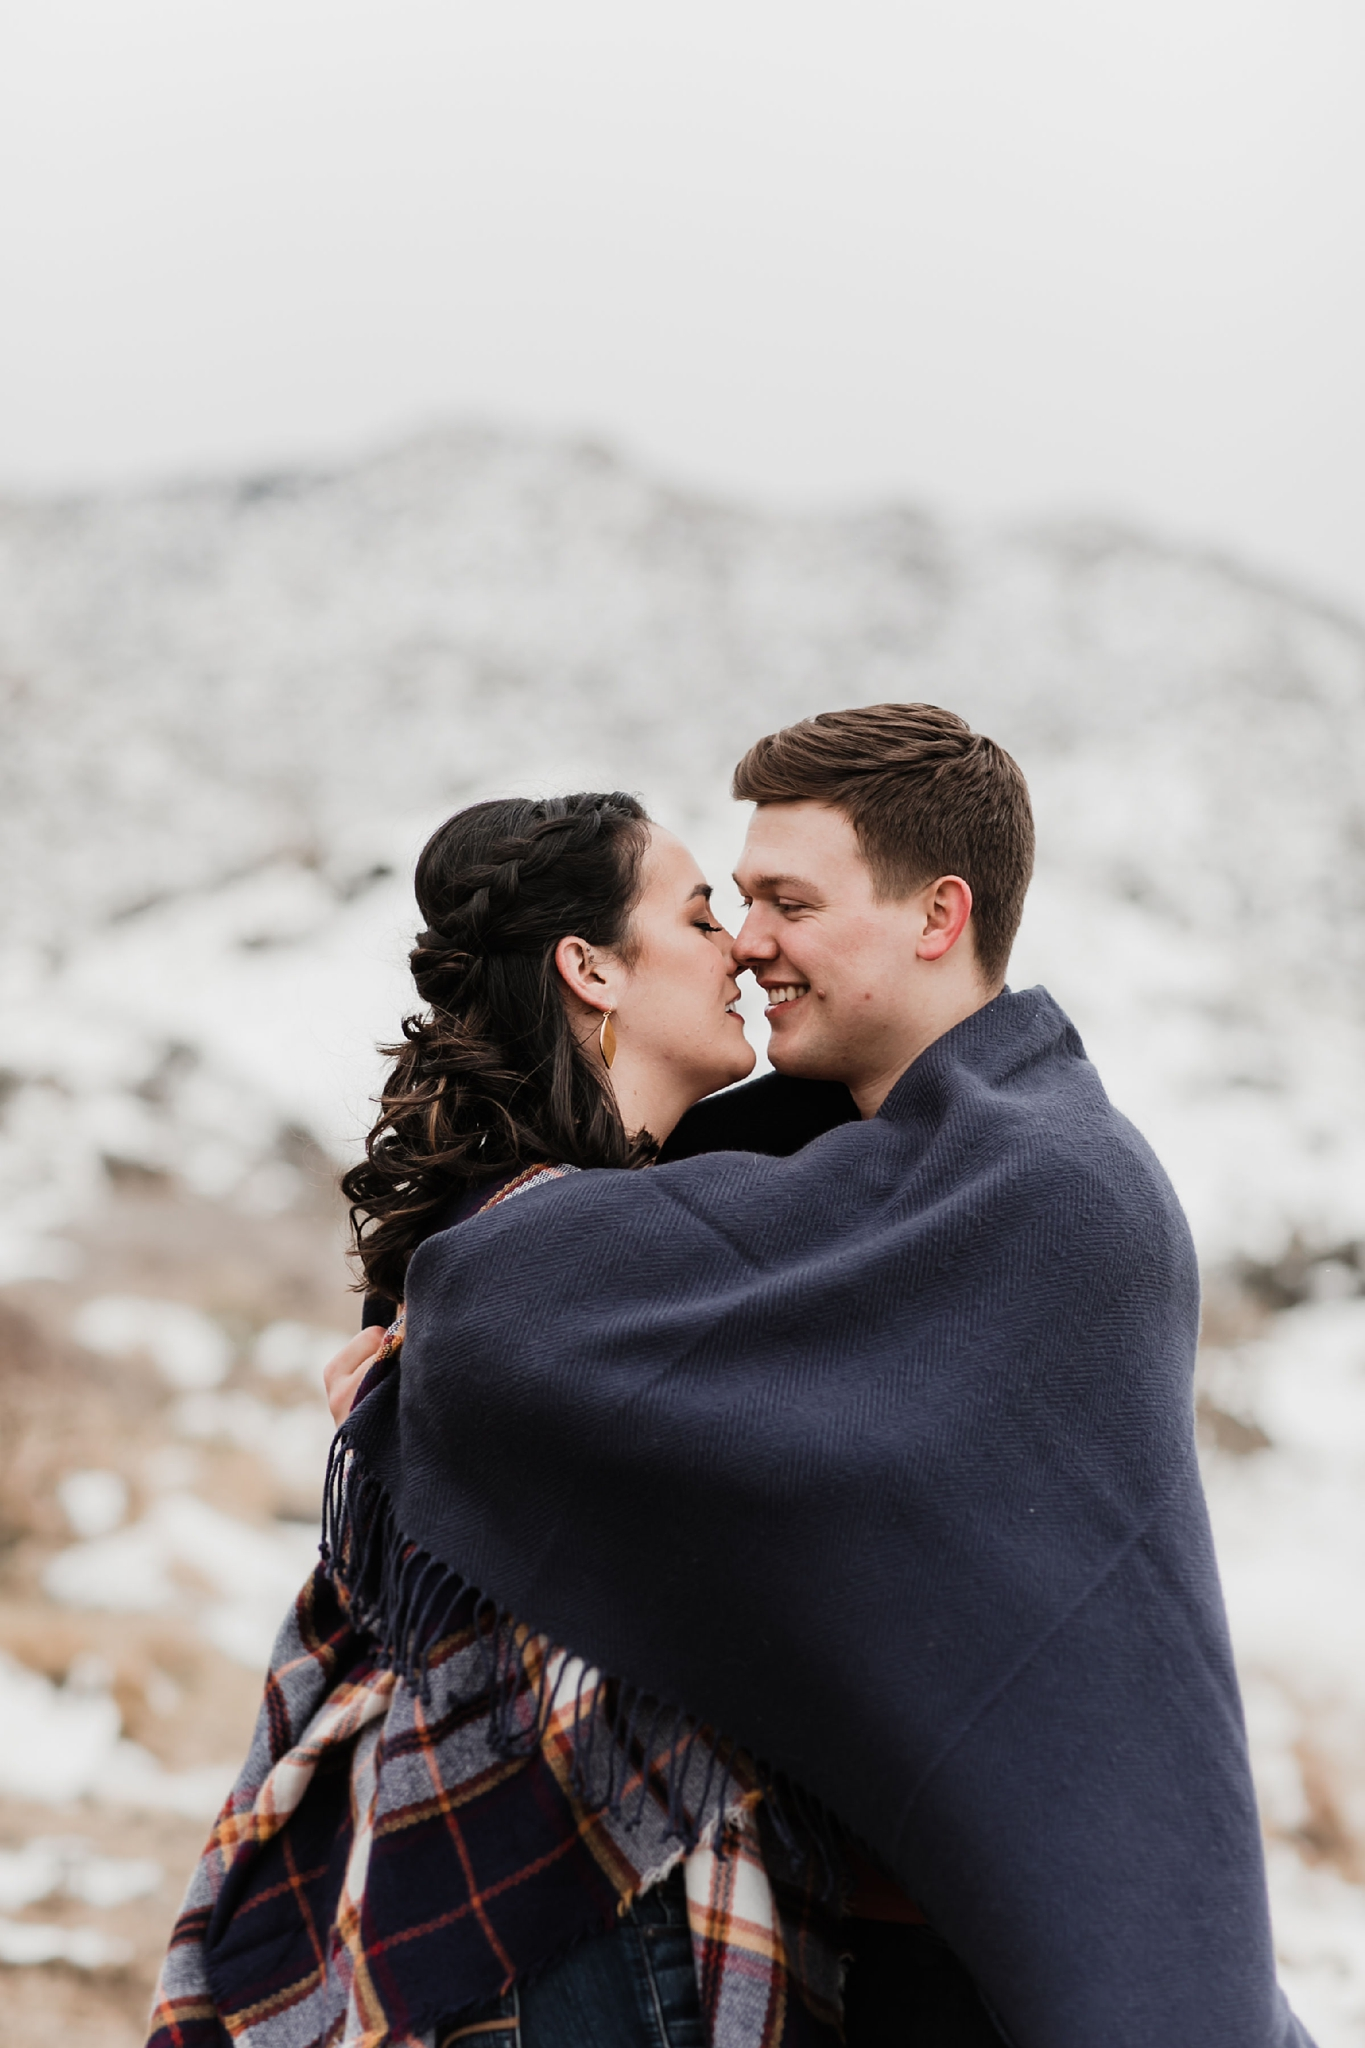 Alicia+lucia+photography+-+albuquerque+wedding+photographer+-+santa+fe+wedding+photography+-+new+mexico+wedding+photographer+-+new+mexico+wedding+-+engagement+-+albuquerque+engagement+-+winter+engagement+-+hyatt+tamaya+wedding_0017.jpg